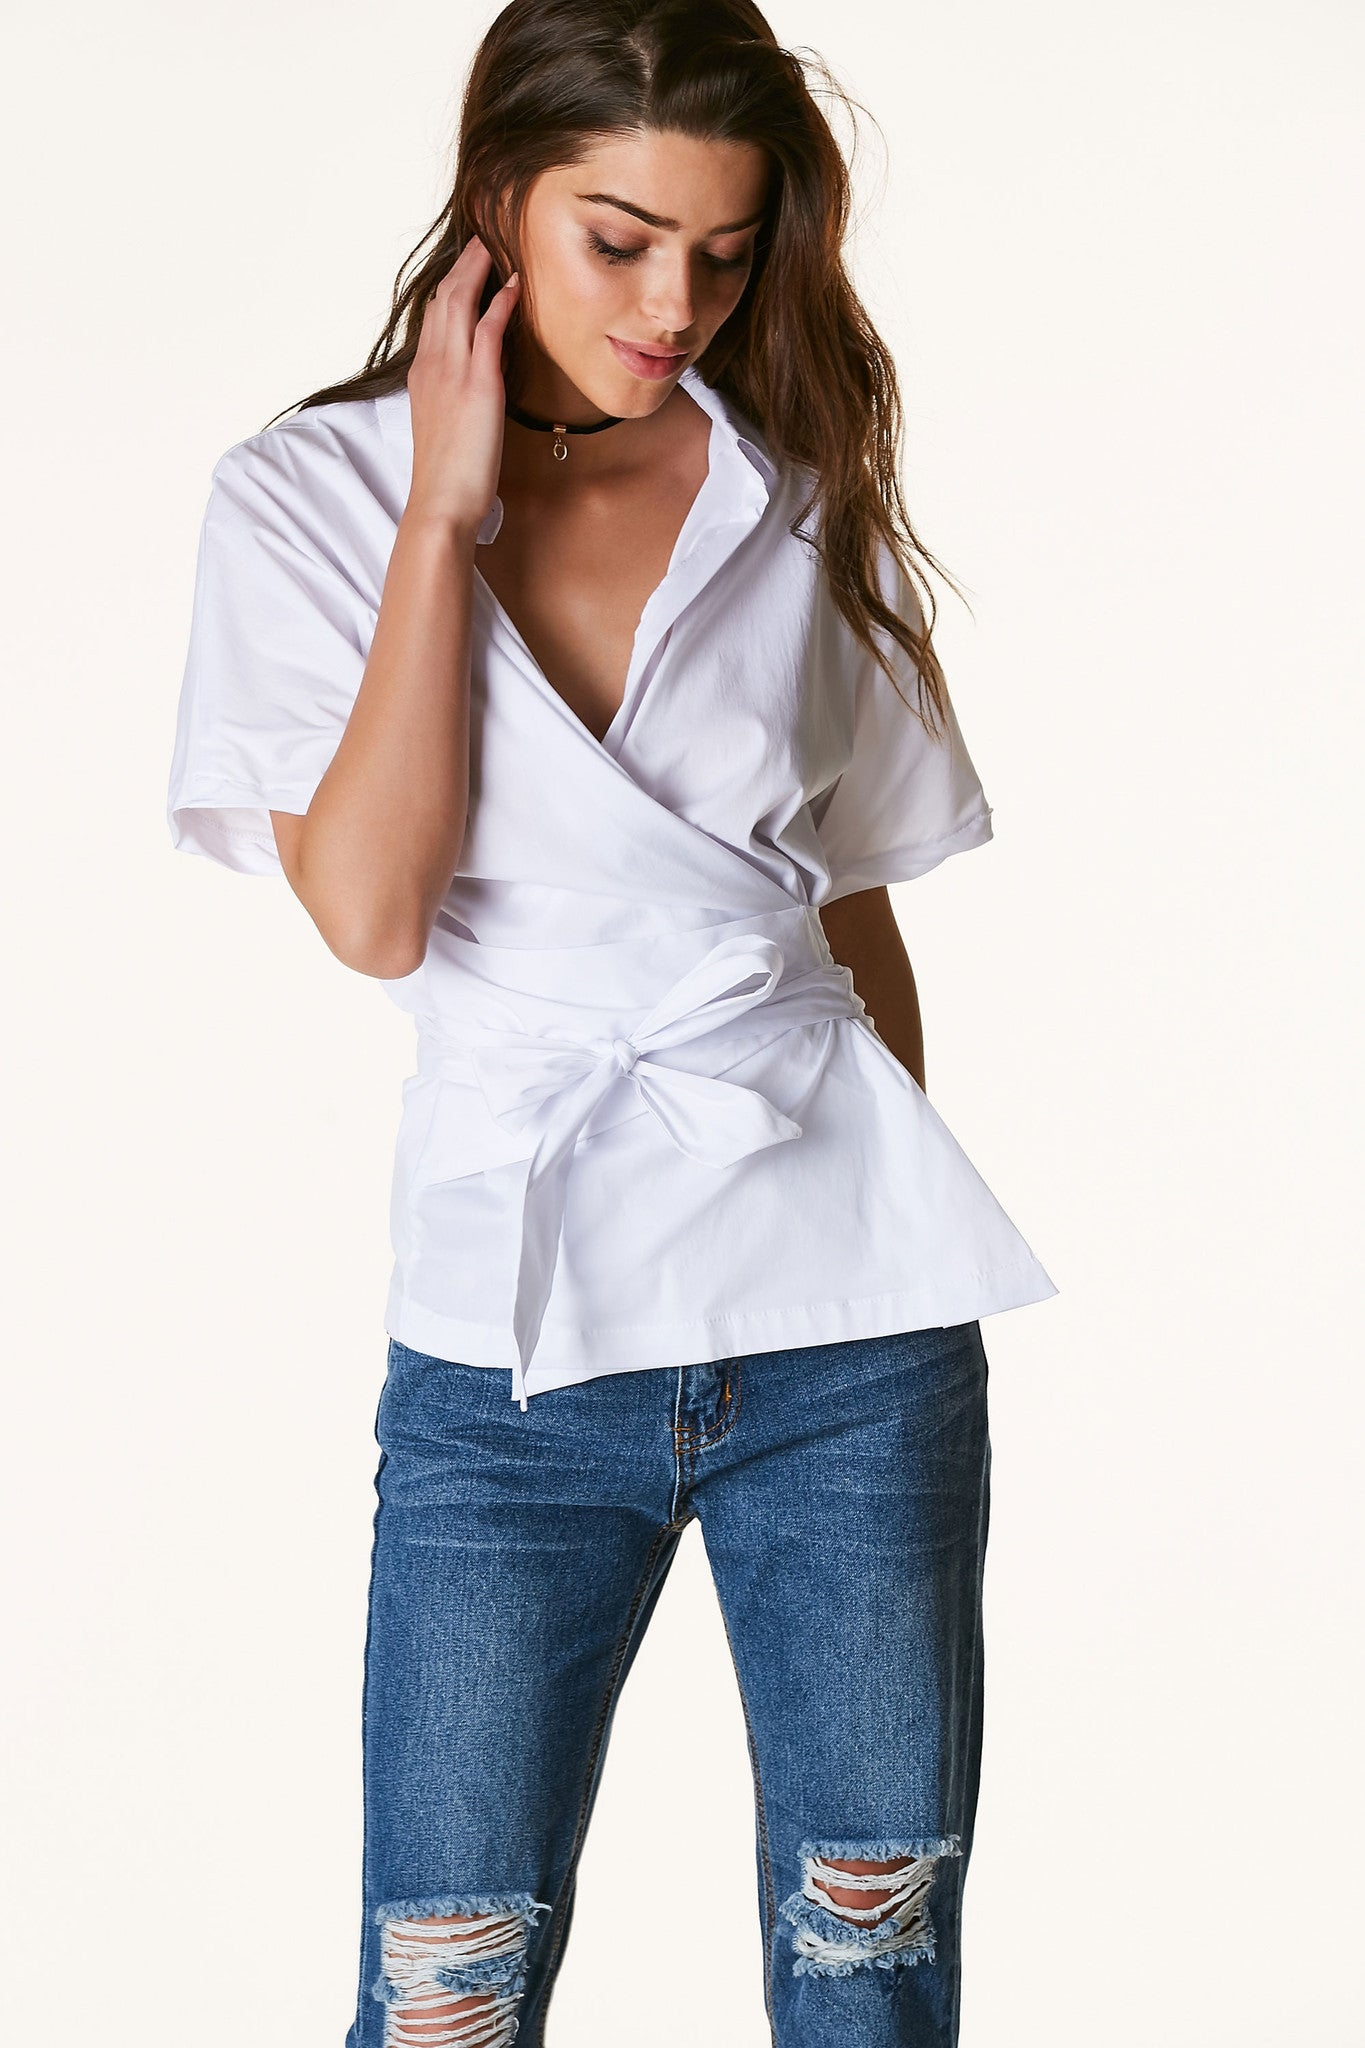 Wrap over short sleeve blouse with comfortable relaxed fit. Crisp collar with cut out in back and ties in front for closure.